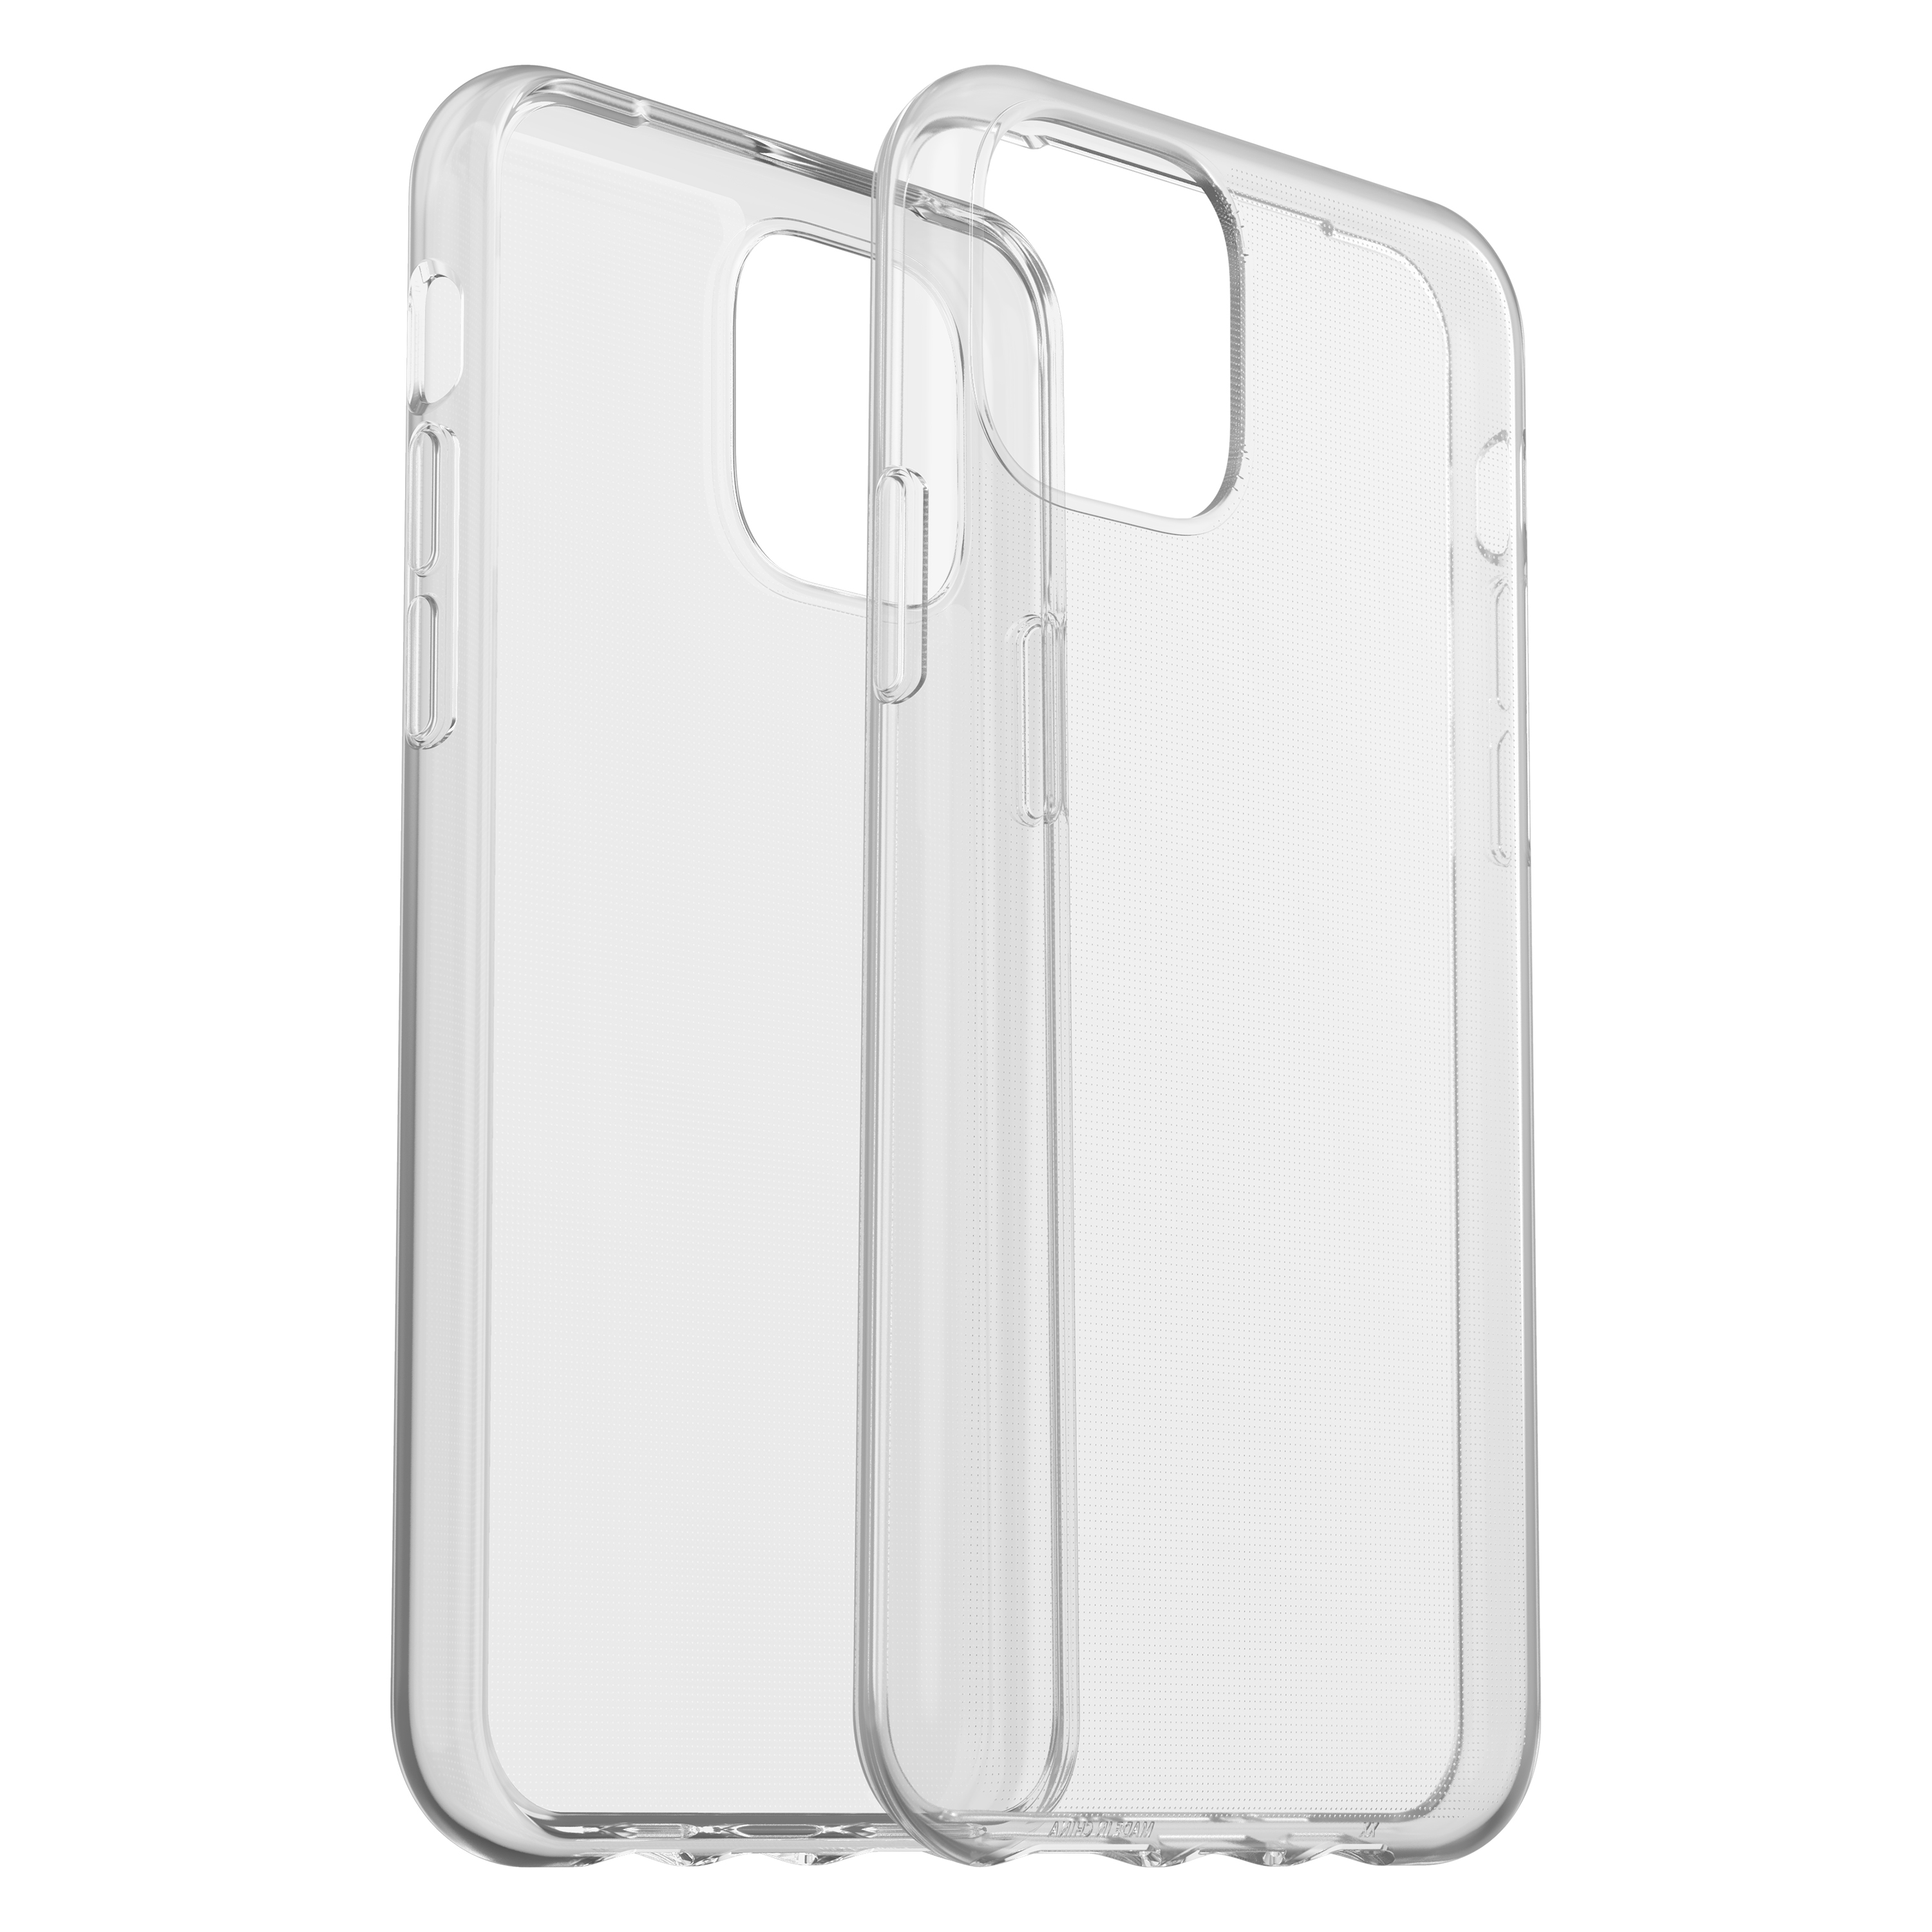 OTTERBOX Coque de protection + Verre trempé pour iPhone 11 Pro - 78-52195 - Transparent